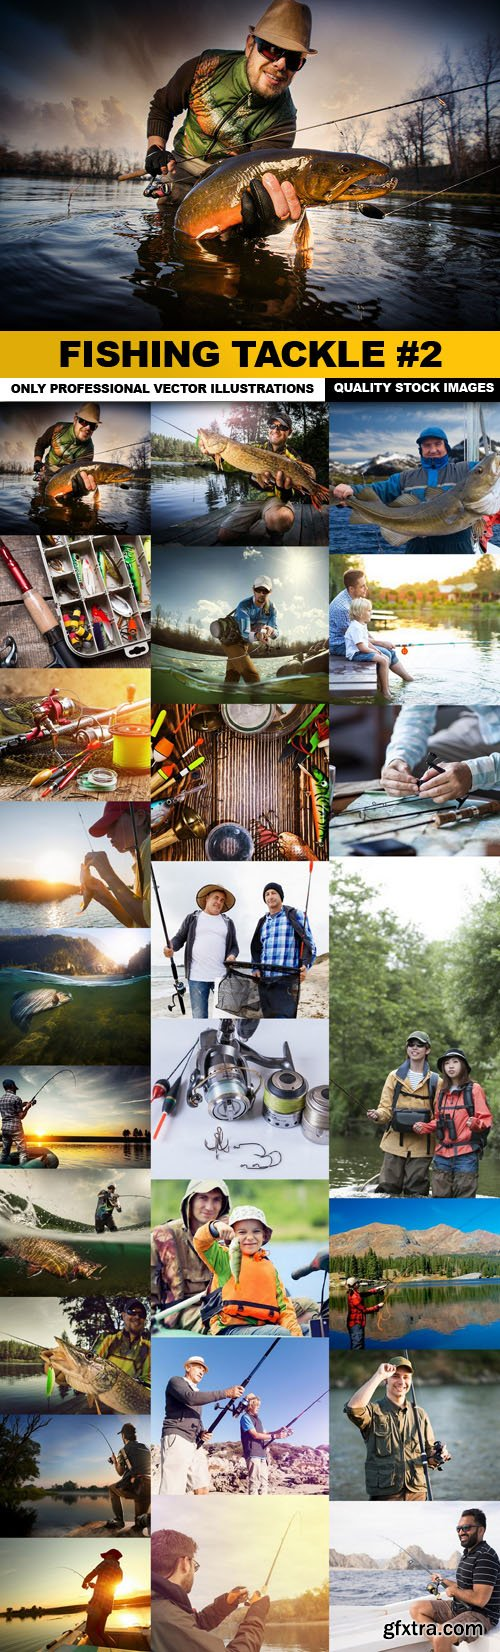 Fishing Tackle #2 - 25 HQ Images